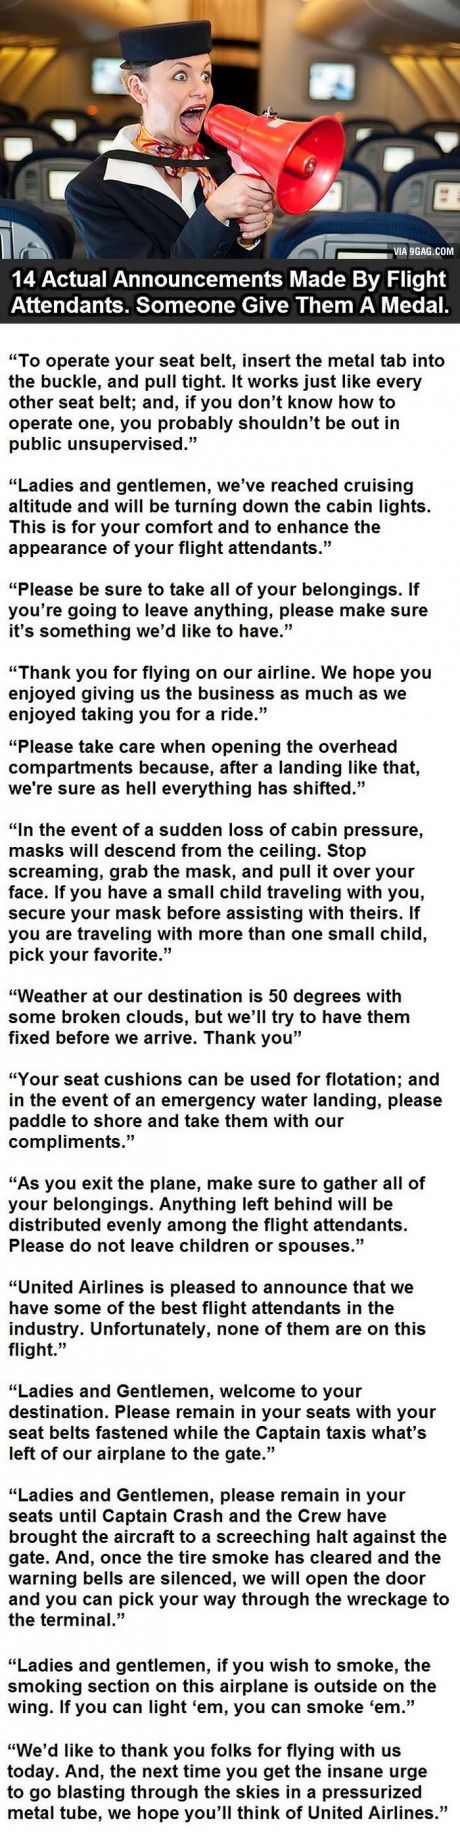 14 Actual Announcements By Flight Attendants  This Is How It